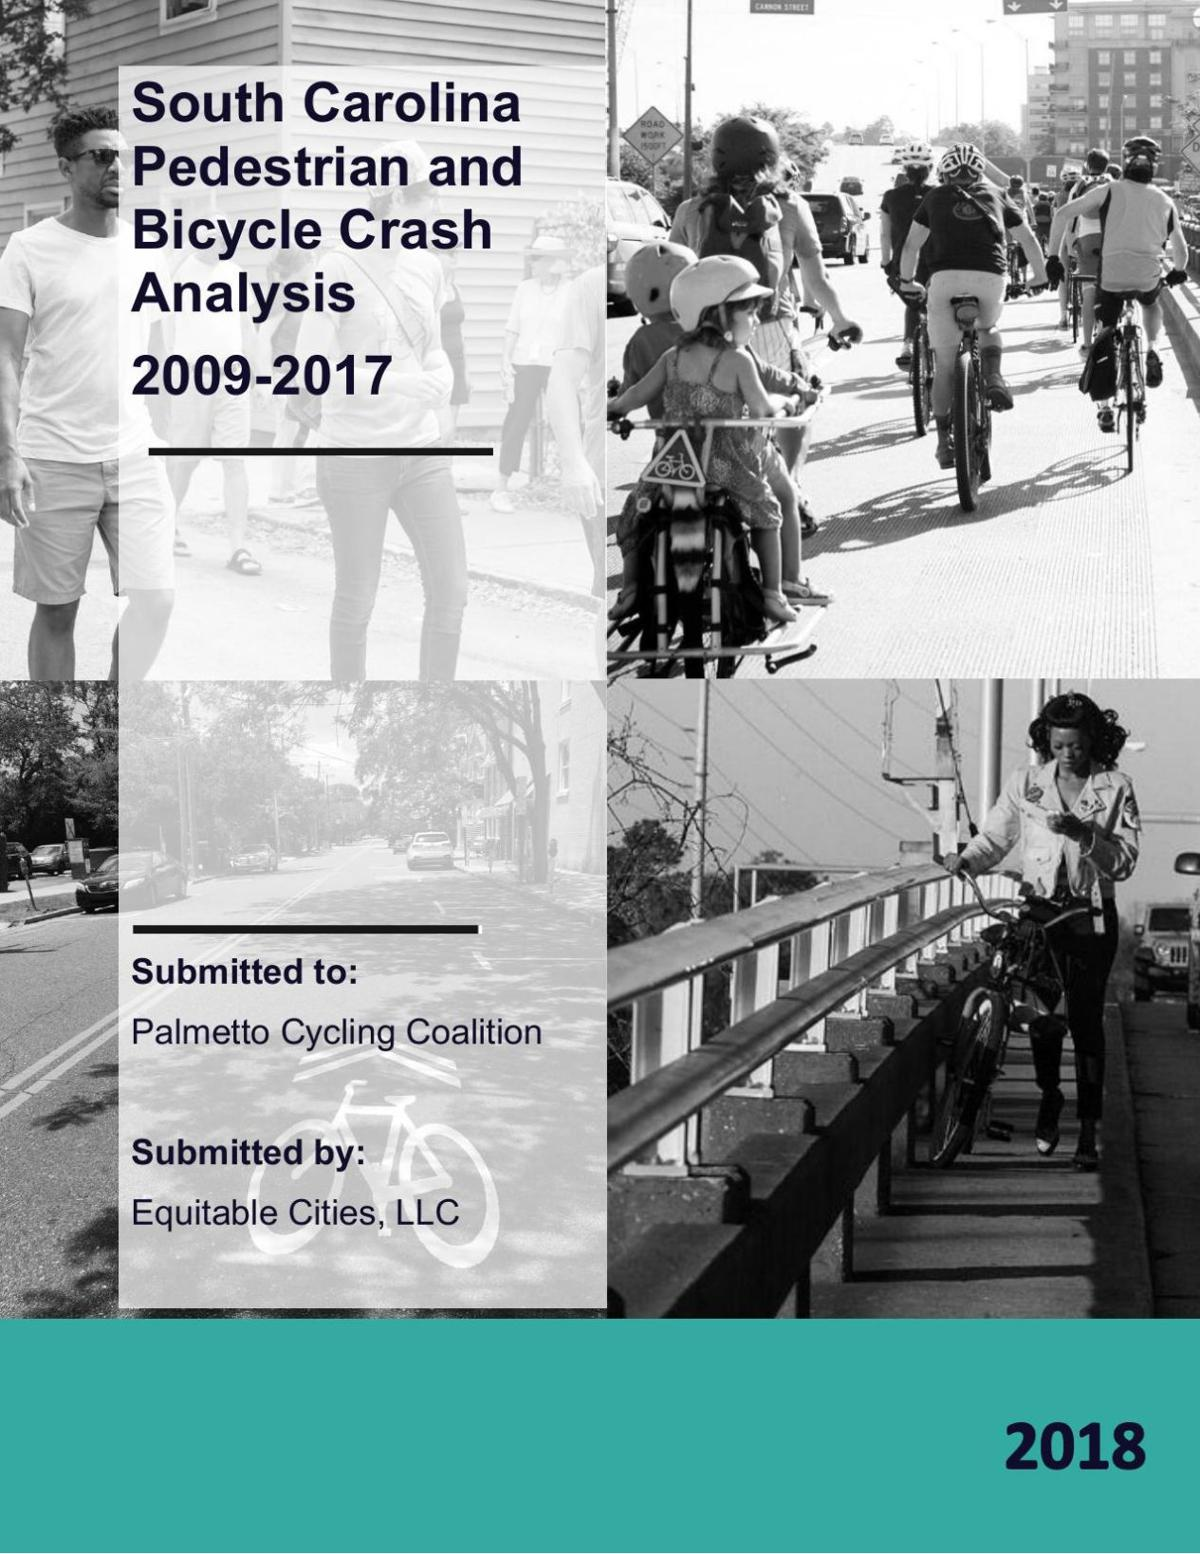 Bike and pedestrian crash data